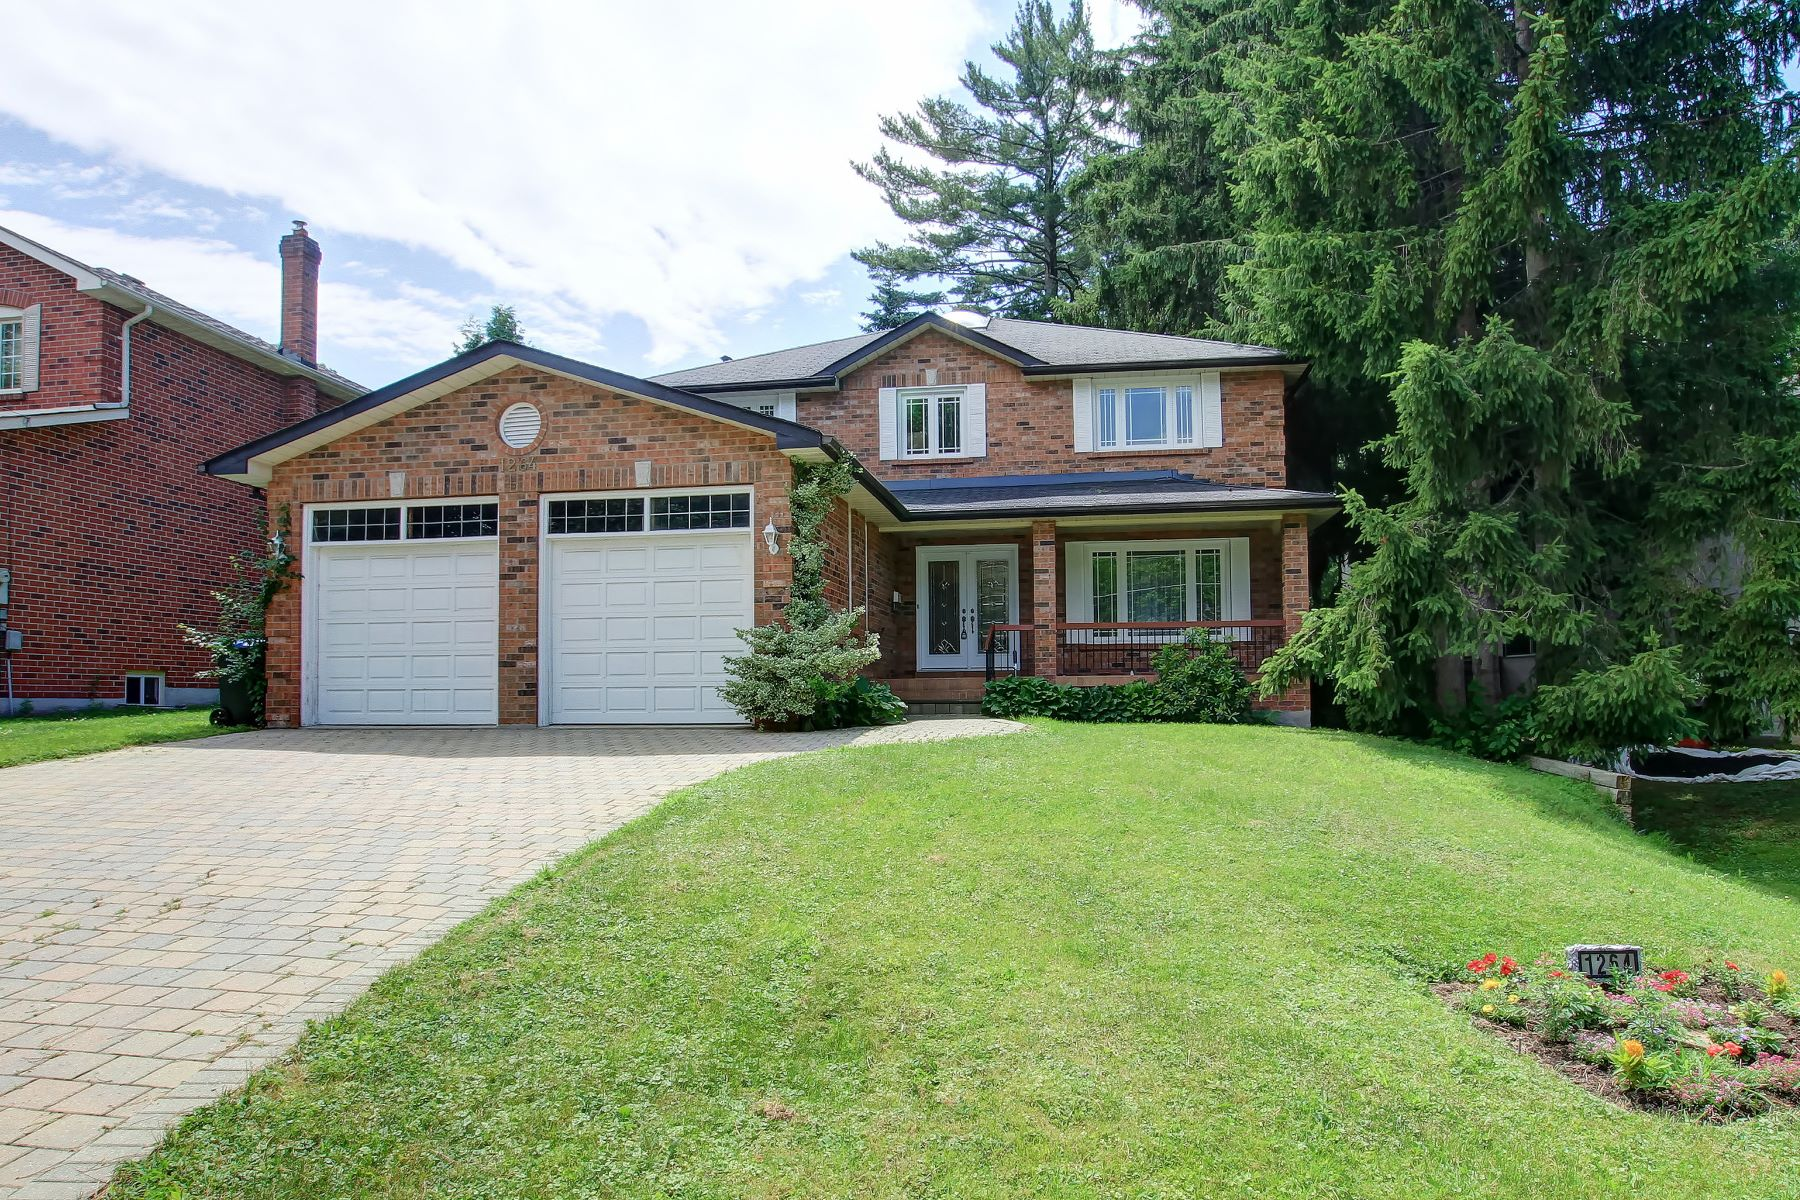 Single Family Homes for Sale at Mississauga, Greater Toronto Area 1264 Kane Rd Mississauga, Ontario L5H 2M3 Canada